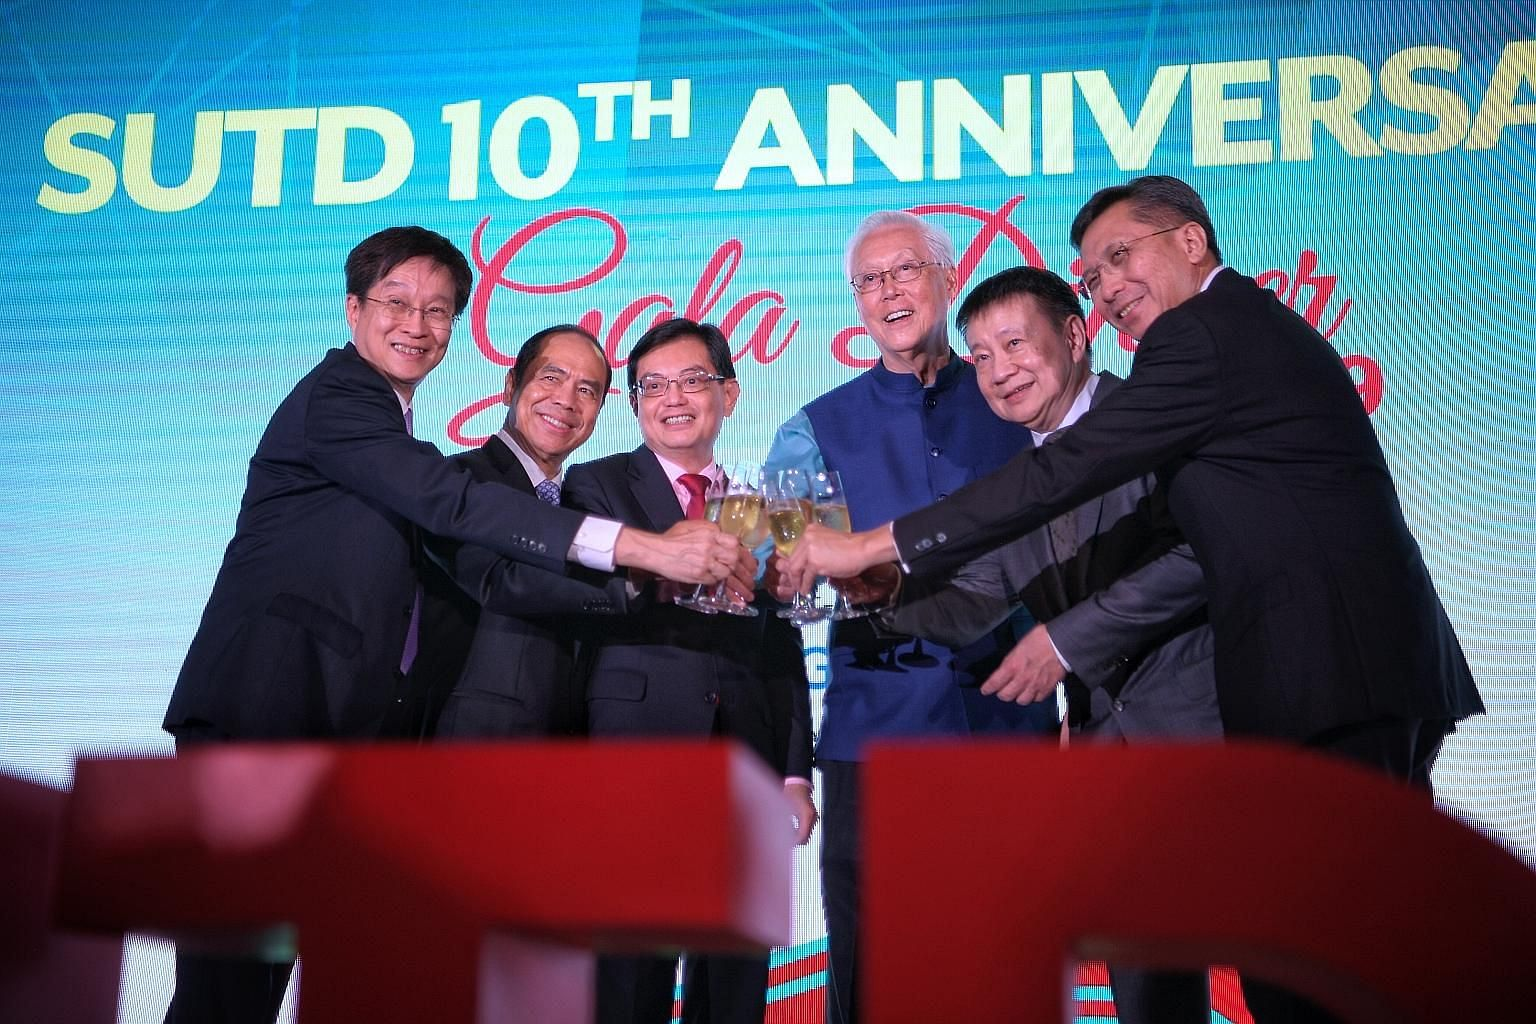 (From left) Singapore University of Technology and Design (SUTD) president Chong Tow Chong, SUTD patron for advancement Sam Goi, Deputy Prime Minister Heng Swee Keat, Emeritus Senior Minister Goh Chok Tong, SUTD chairman of the board of trustees Lee